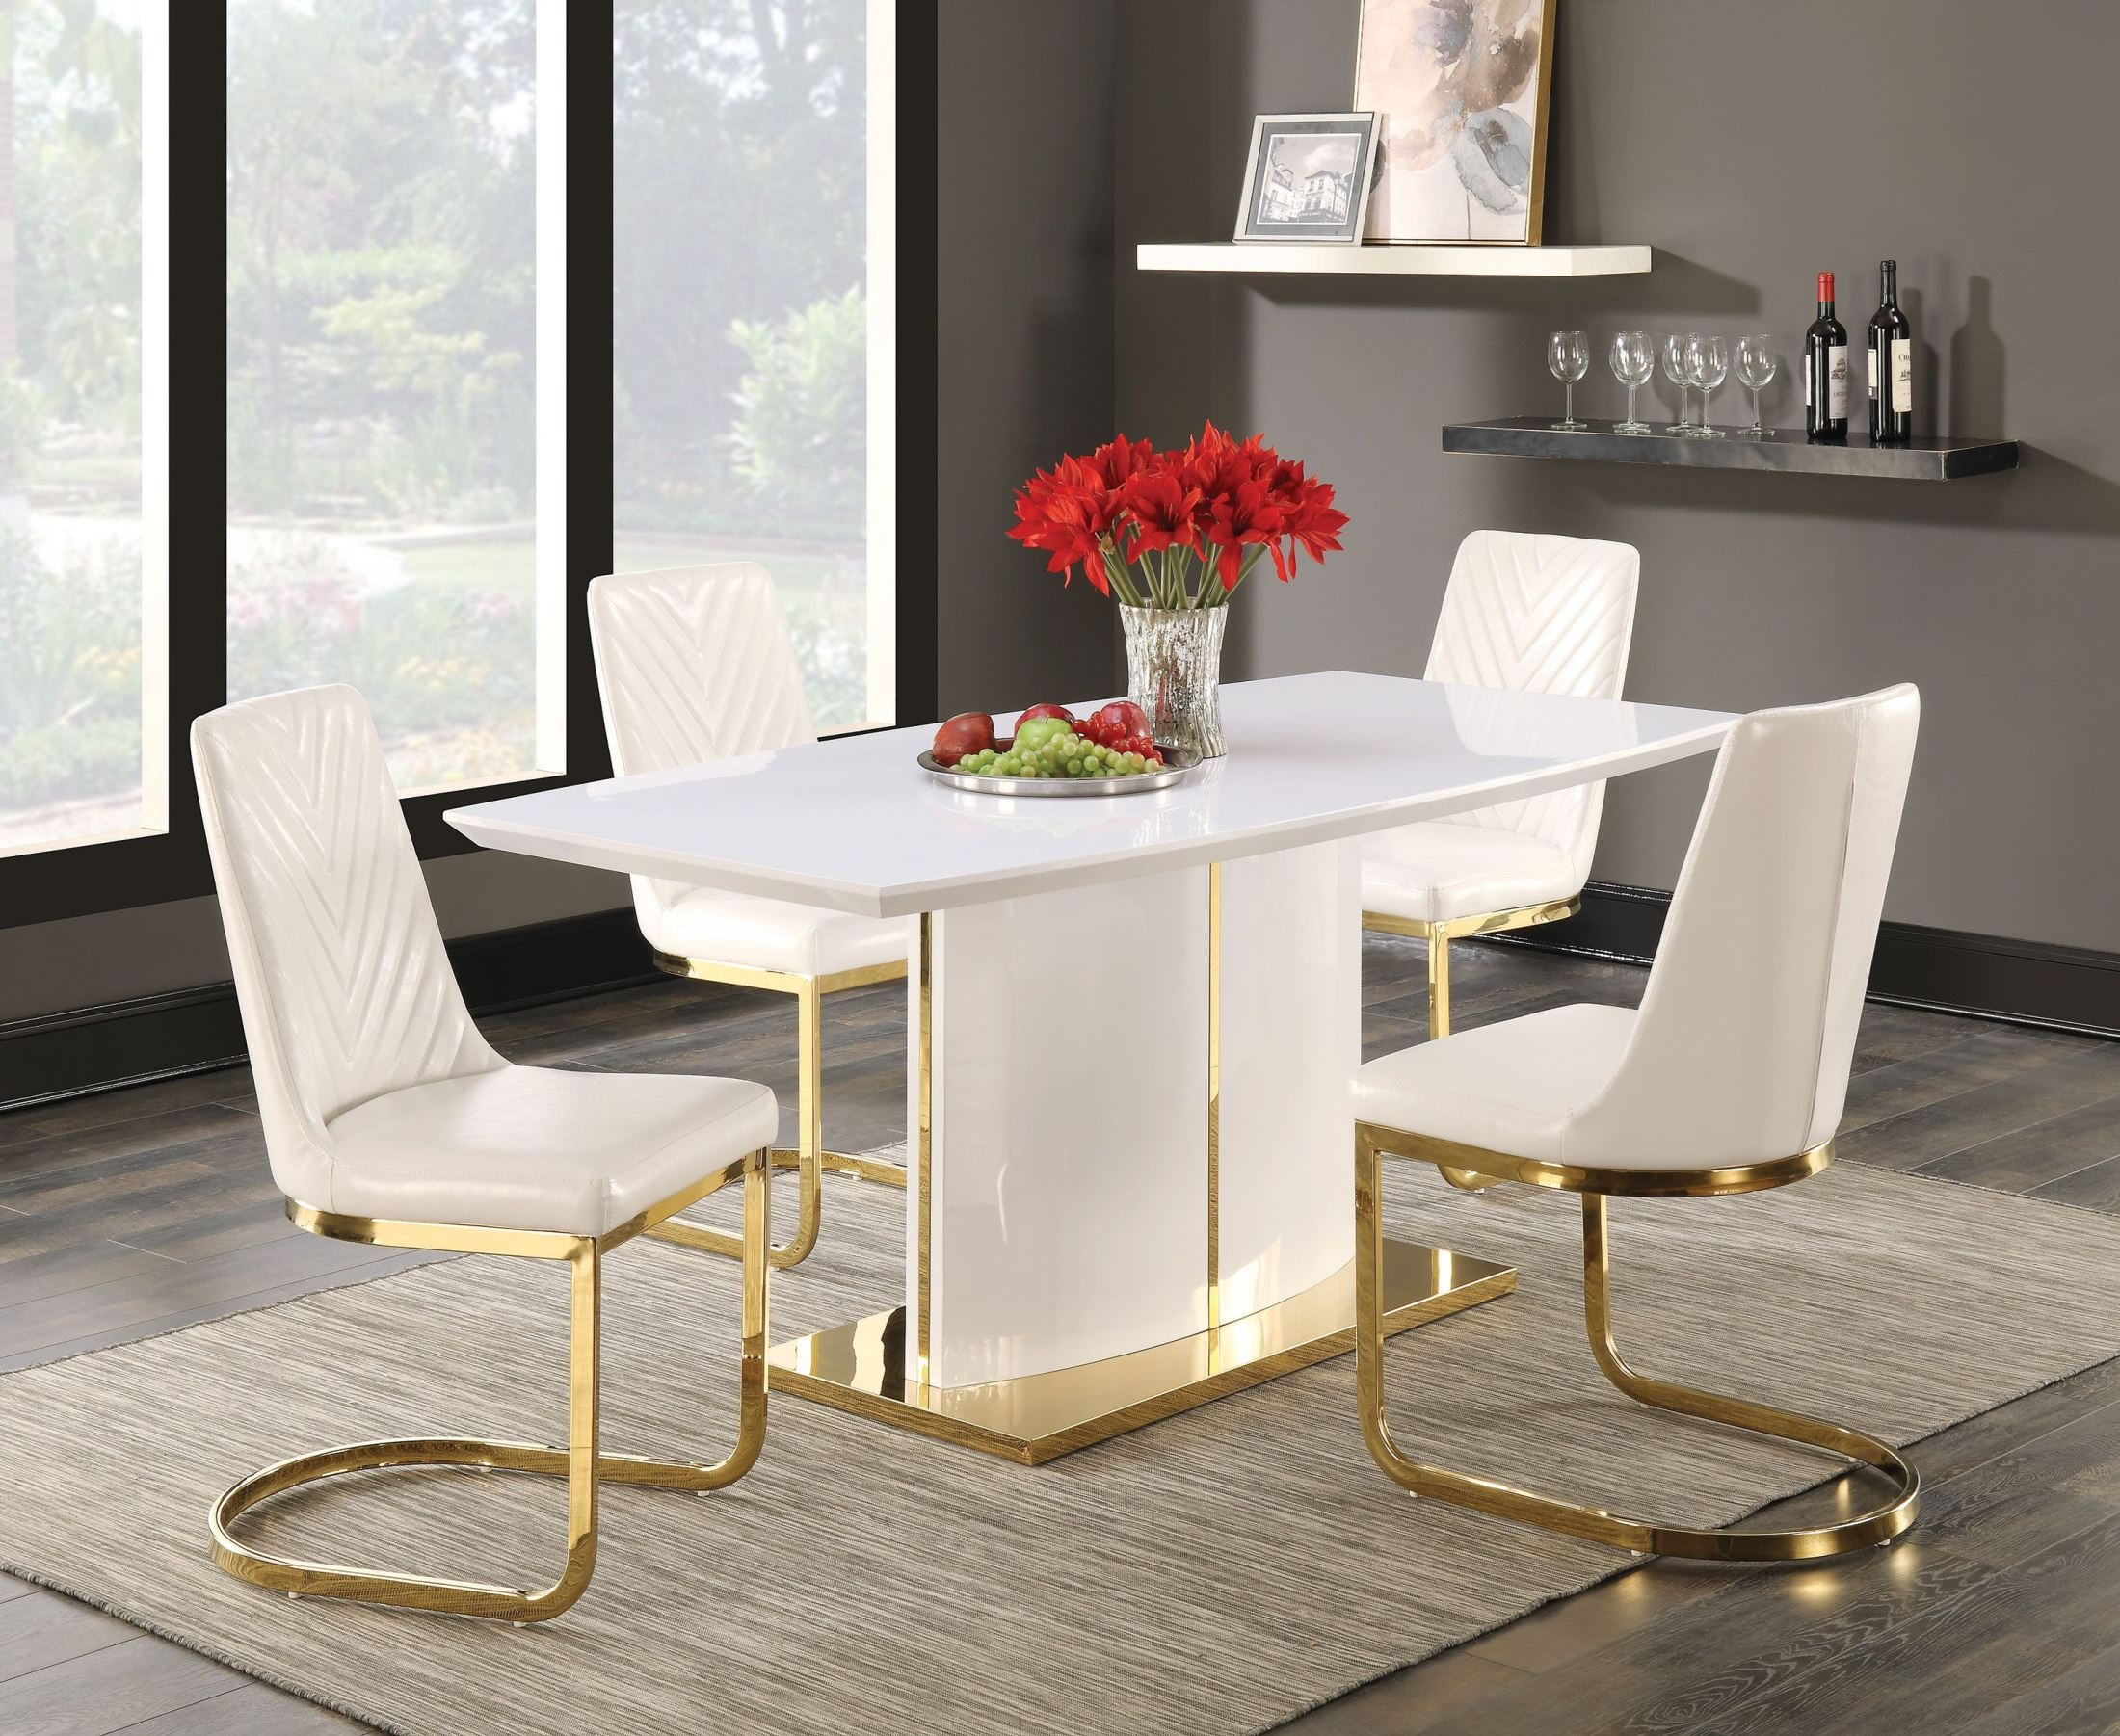 Cornelia High Gloss White Dining Room Set From Coaster